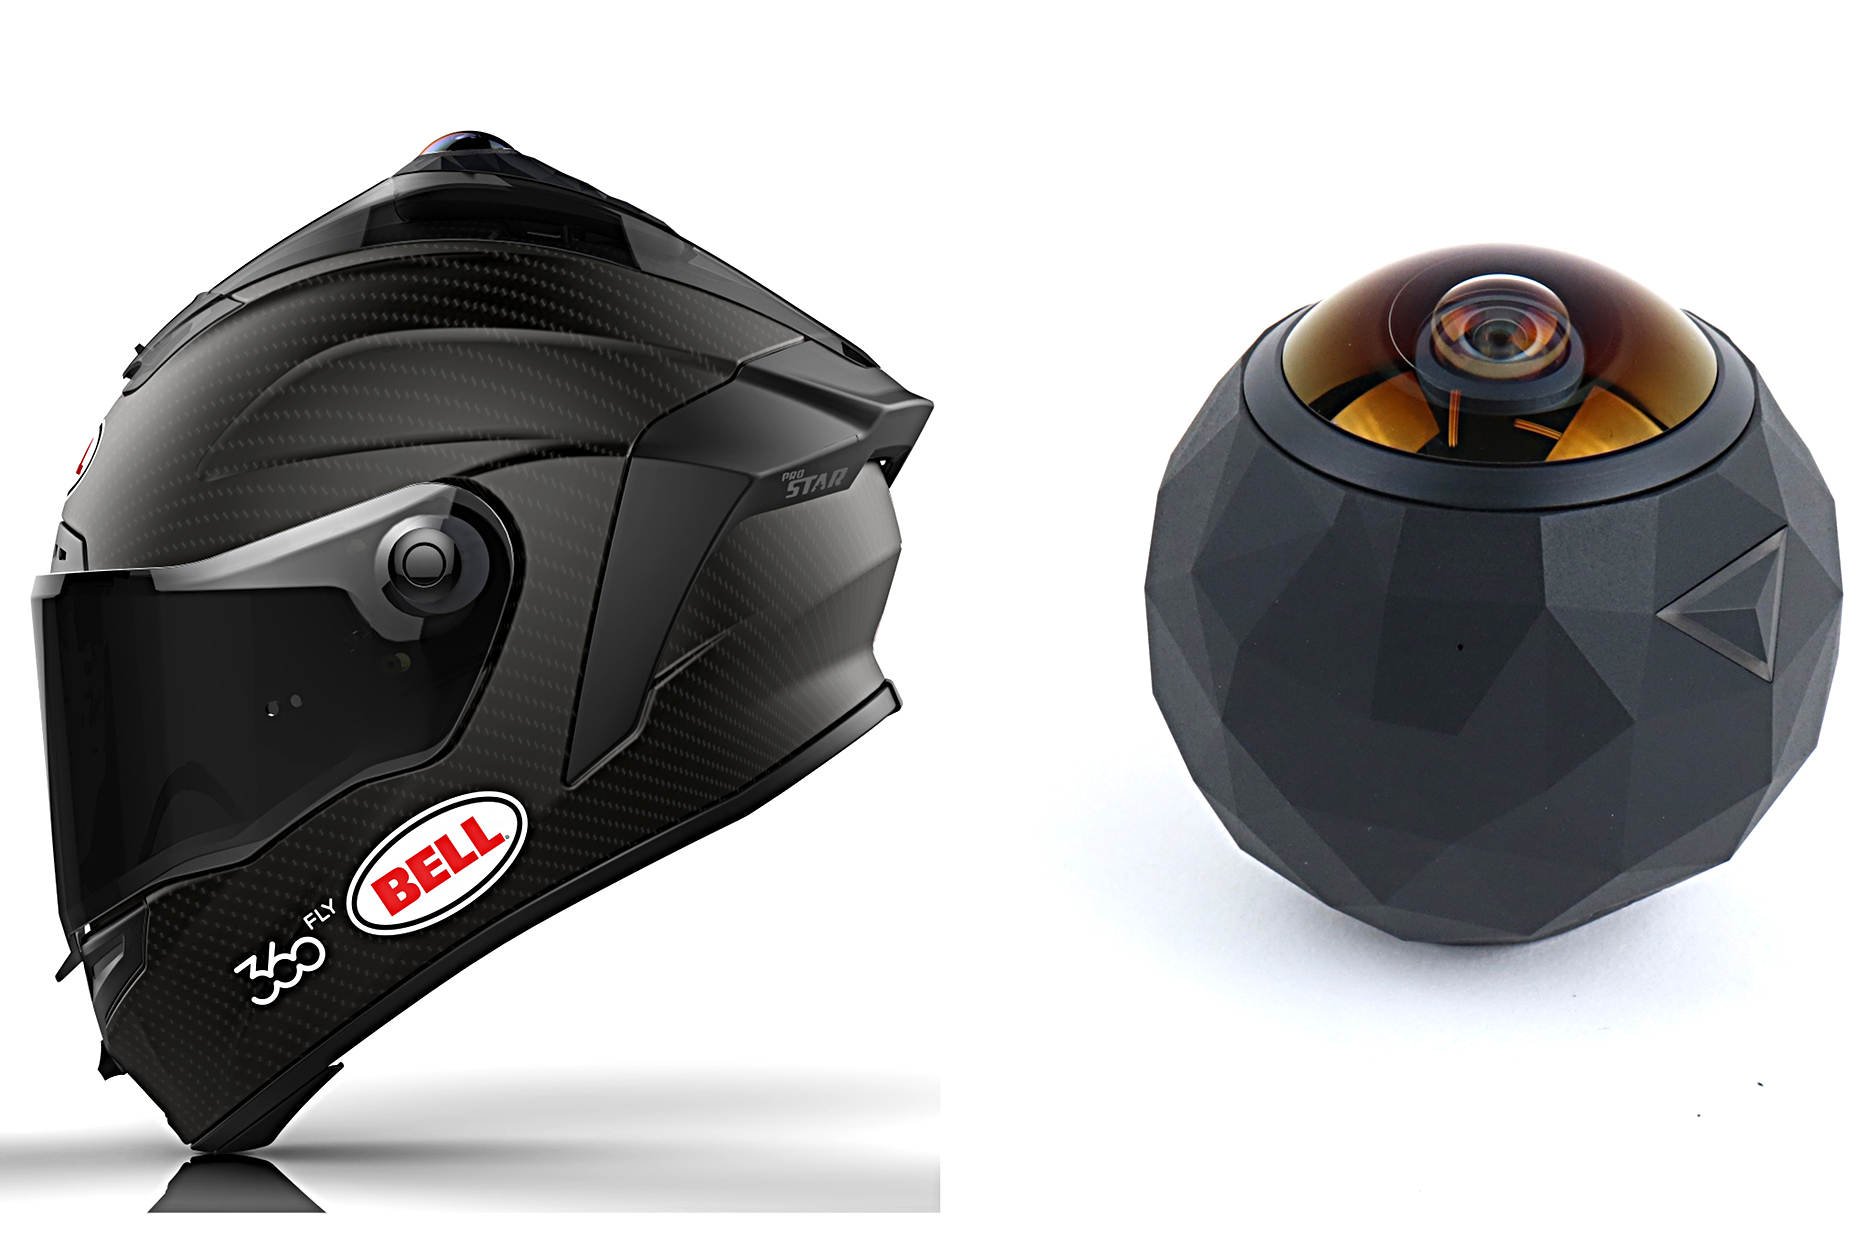 Bell Shows Off Helmet With Integrated 360 Degree Video